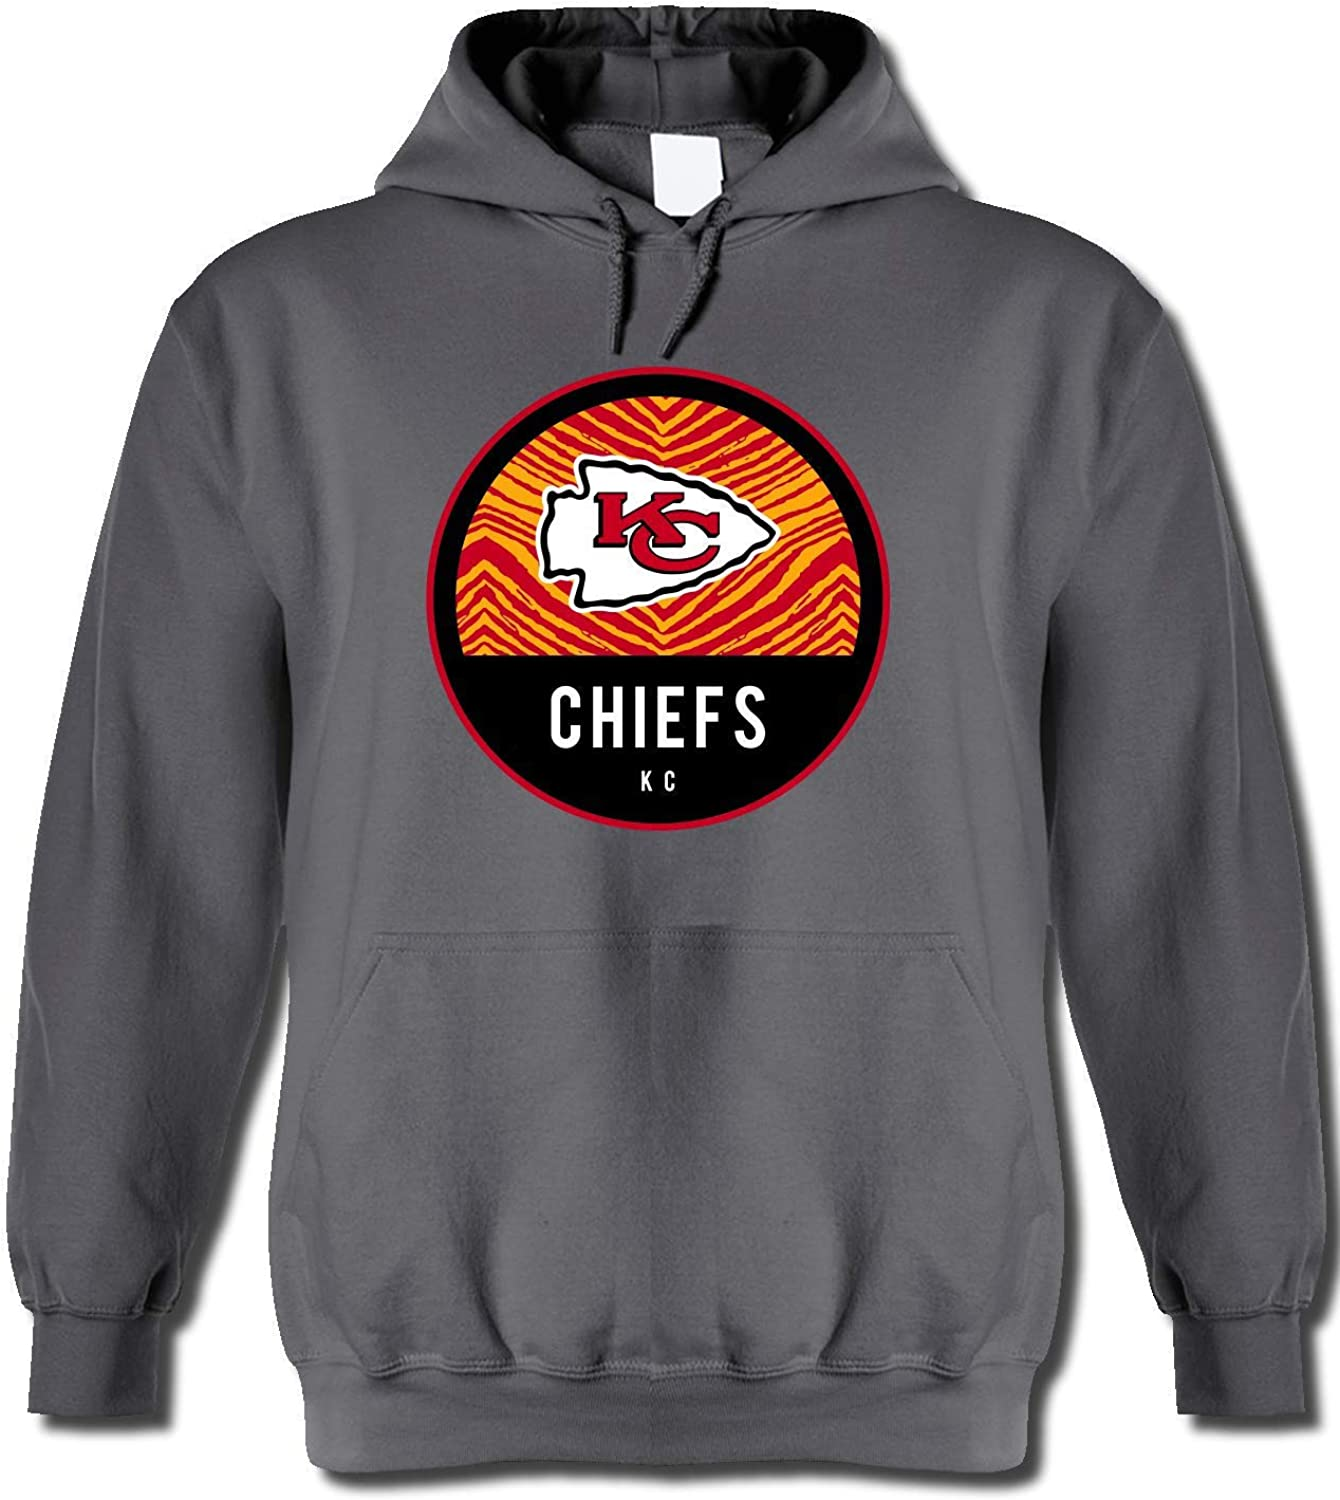 Year-end gift Zubaz Officially Licensed NFL Men's Indefinitely Team Te Gray Hoodie Graphic